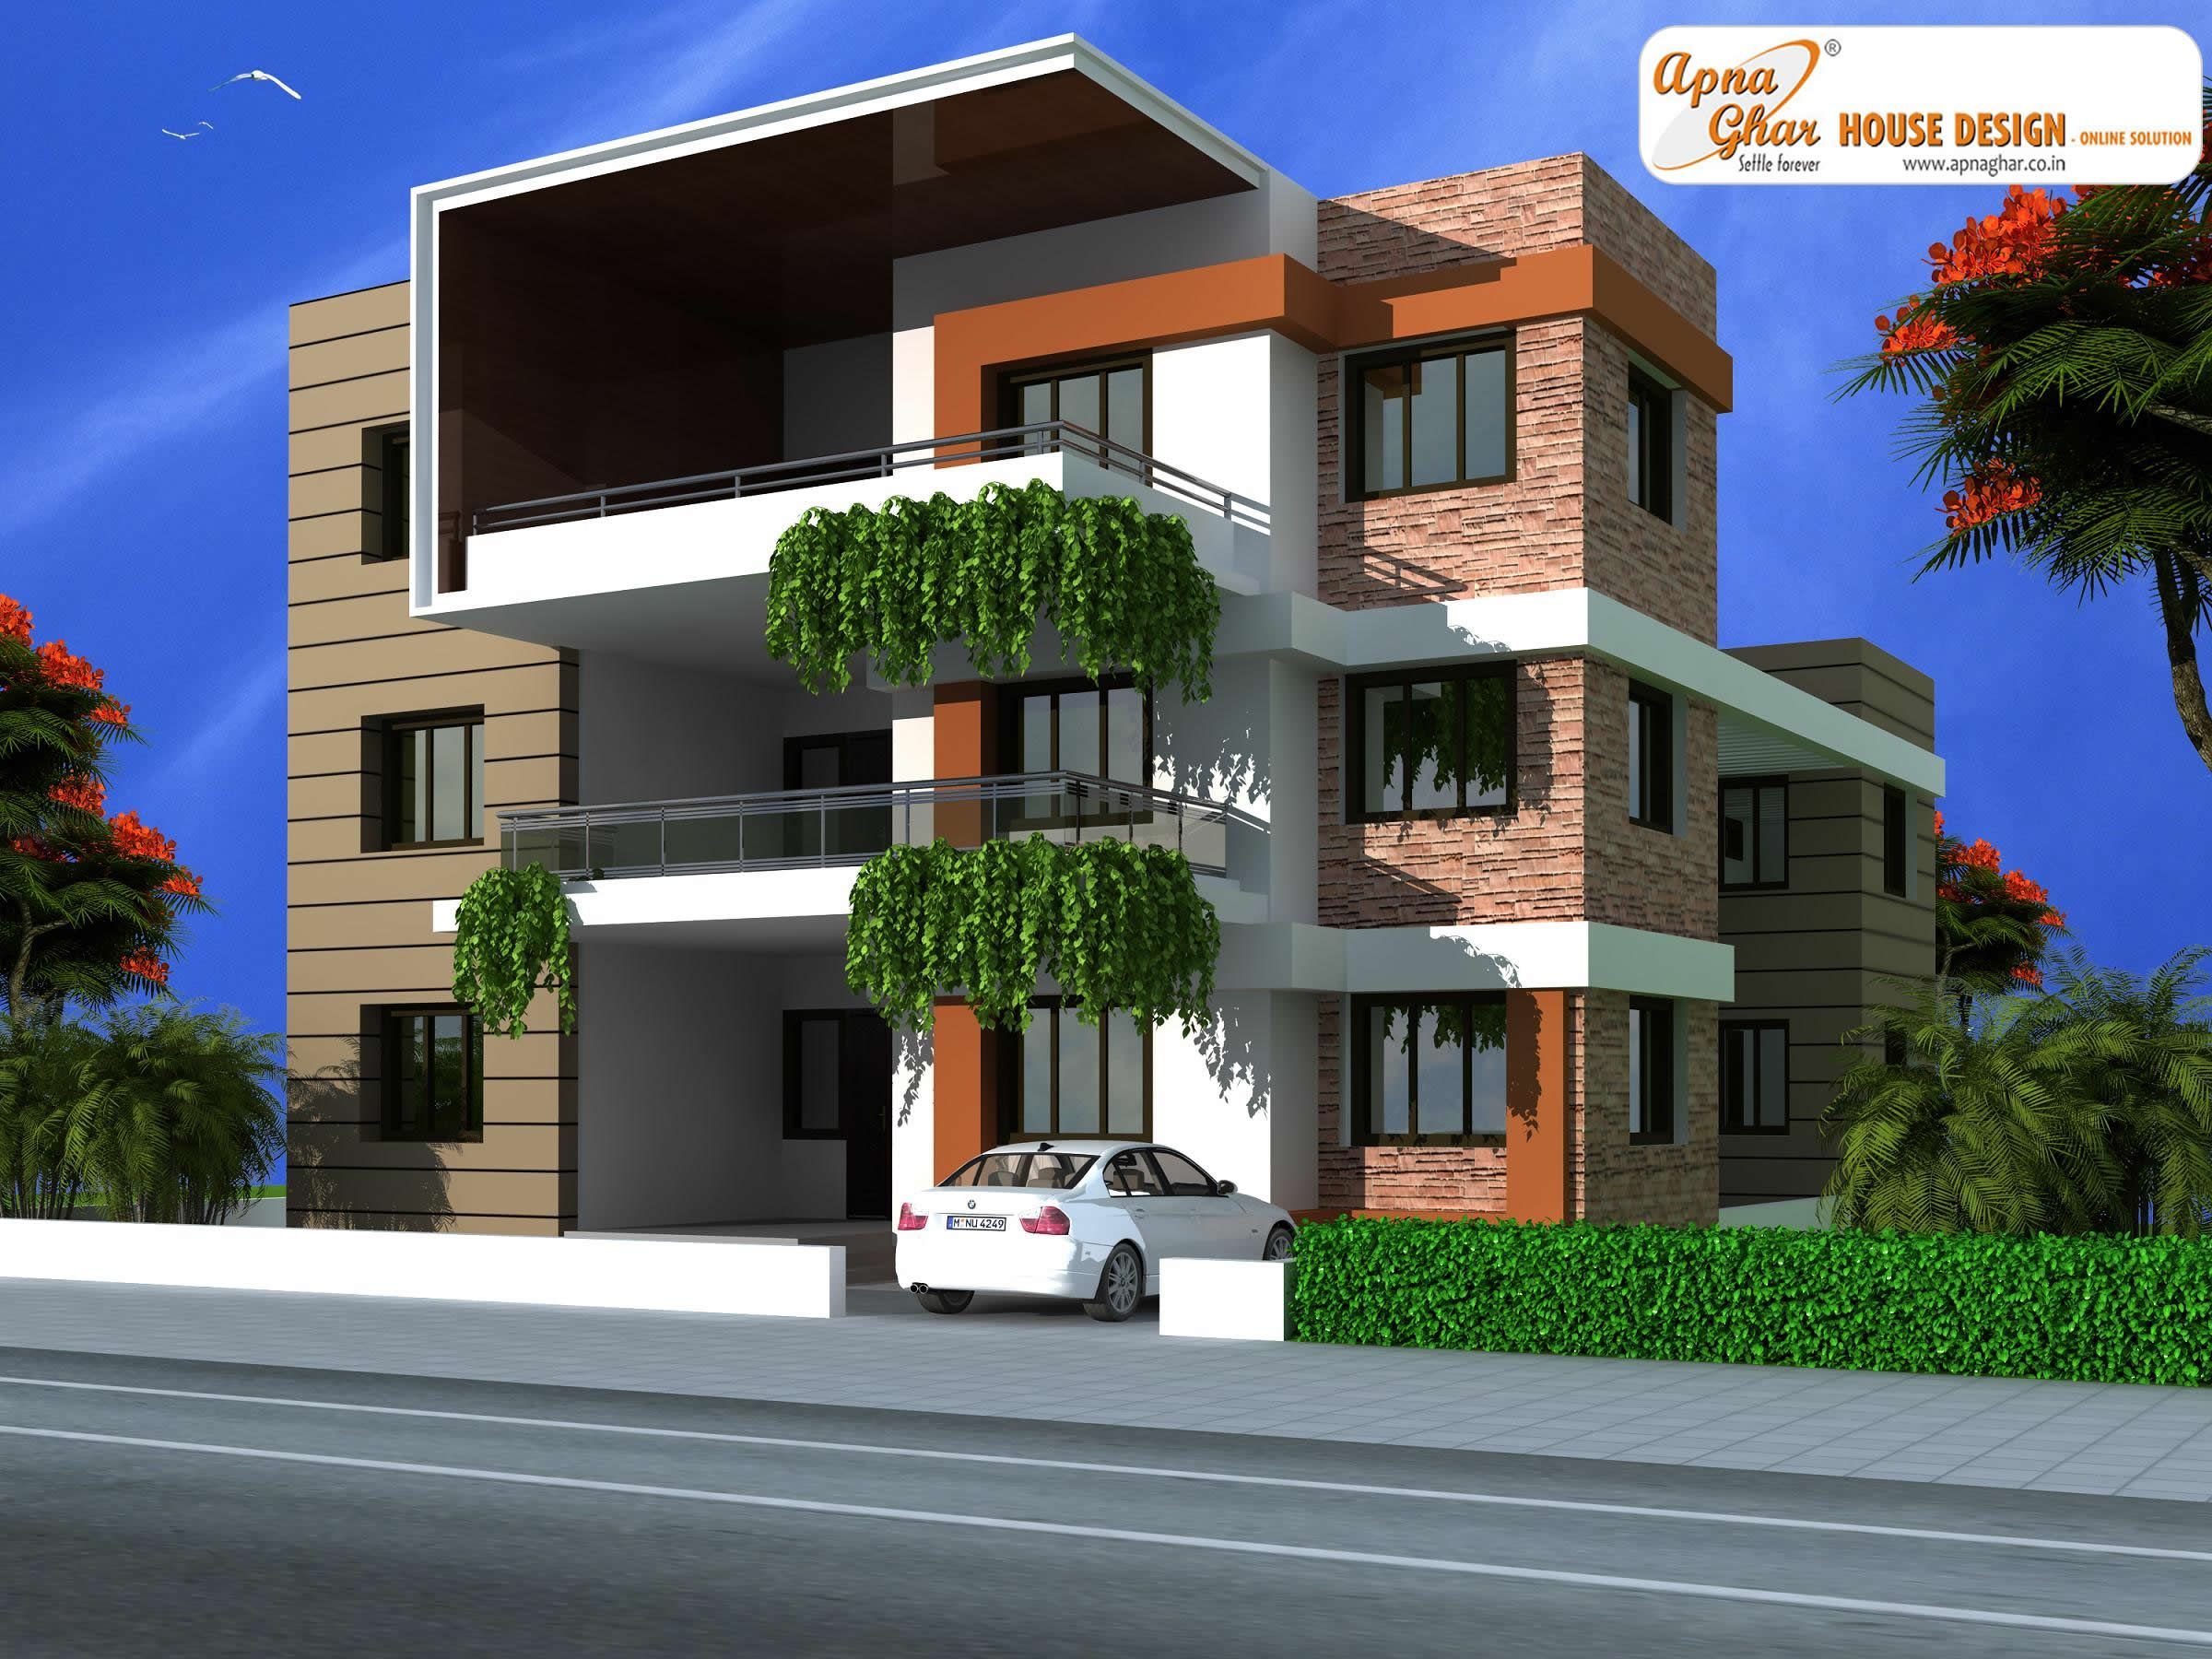 Kitchen Store In House 11 bedroom, modern triplex (3 floor) house design. area: 378 sq